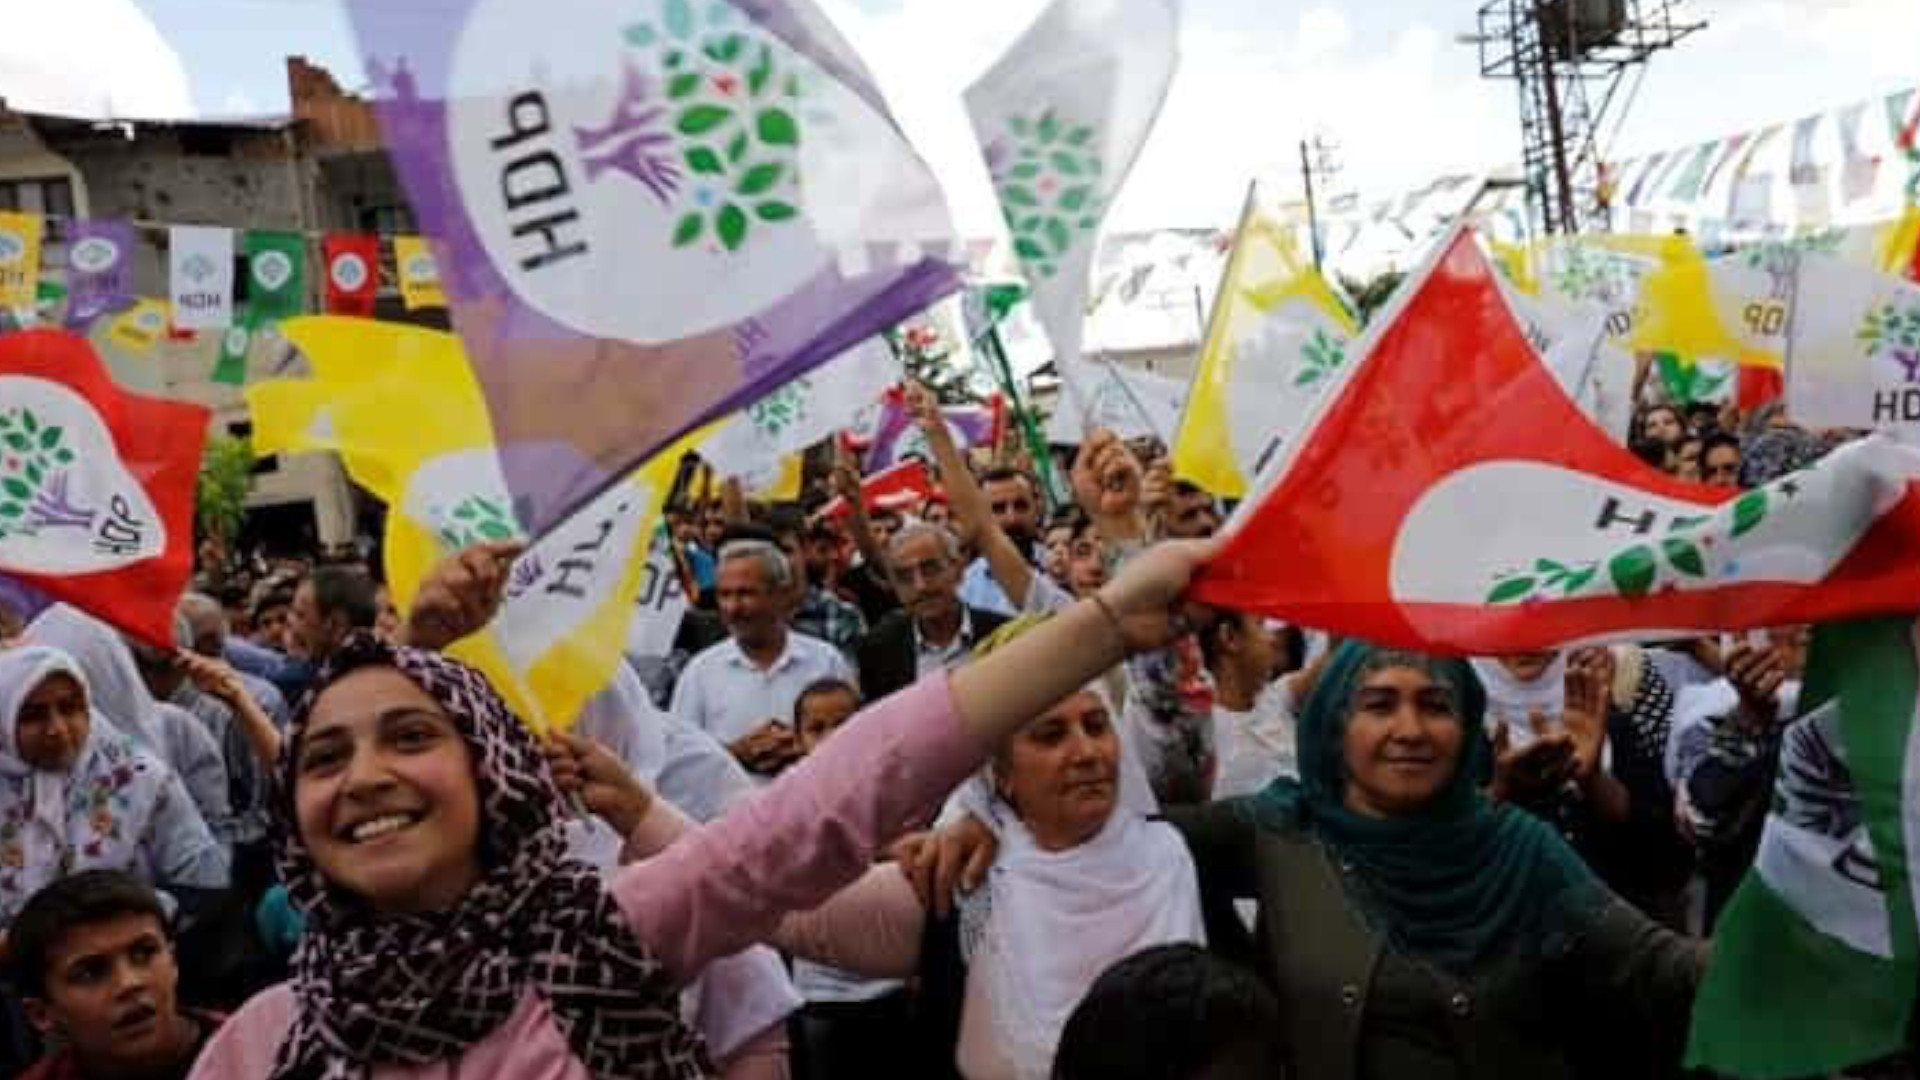 A Turkey without Kurds: Reforms to deform democracy